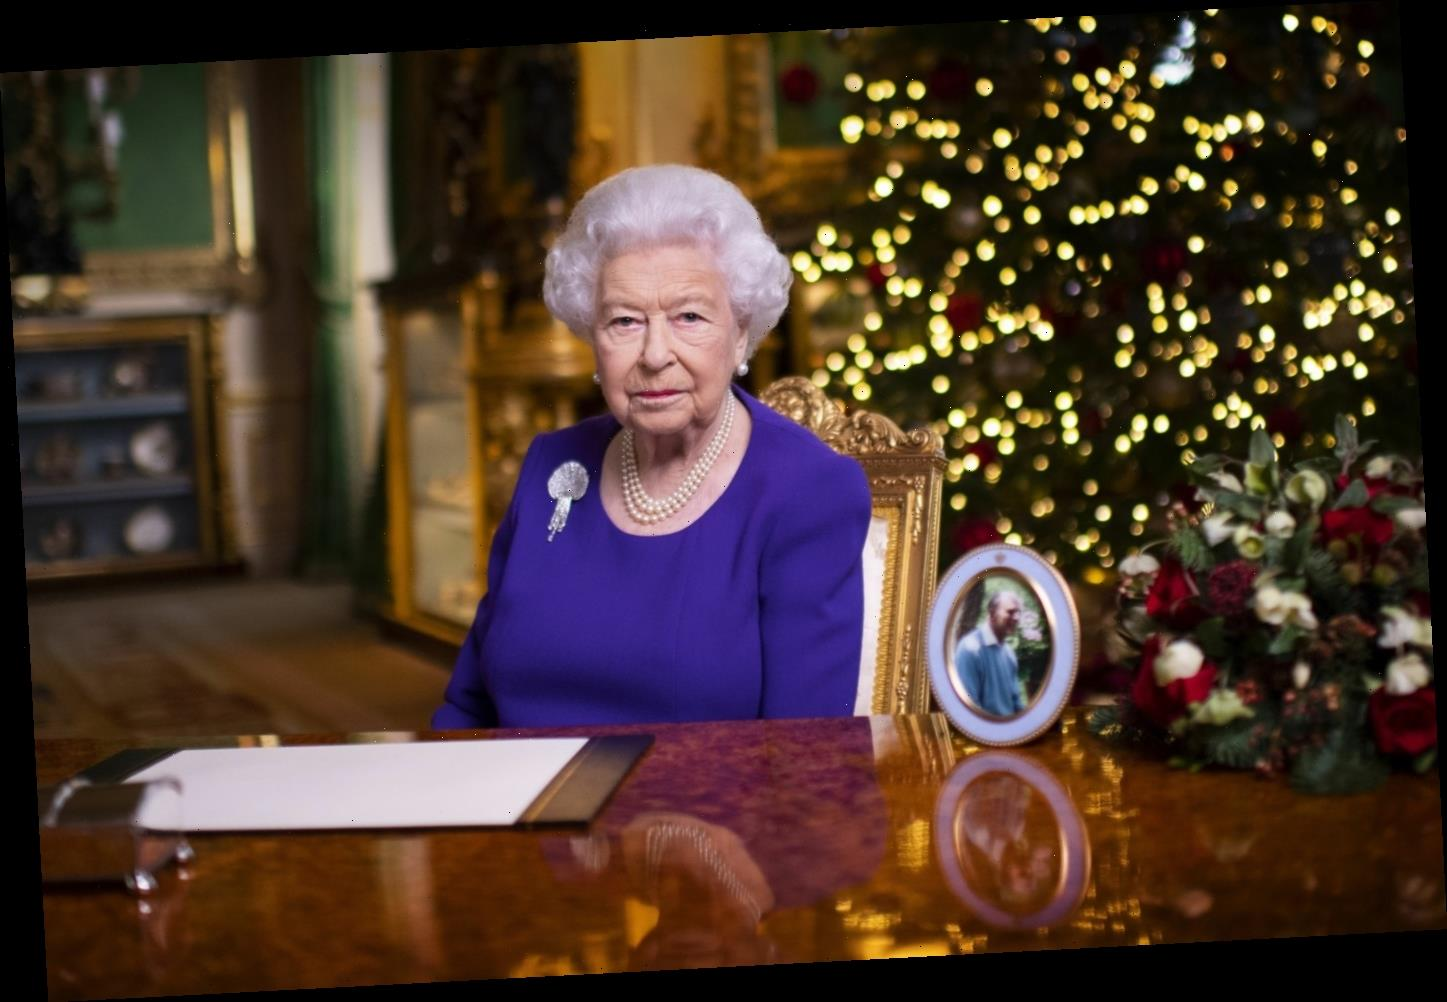 Queen Elizabeth's Christmas speech was very religious & bittersweet